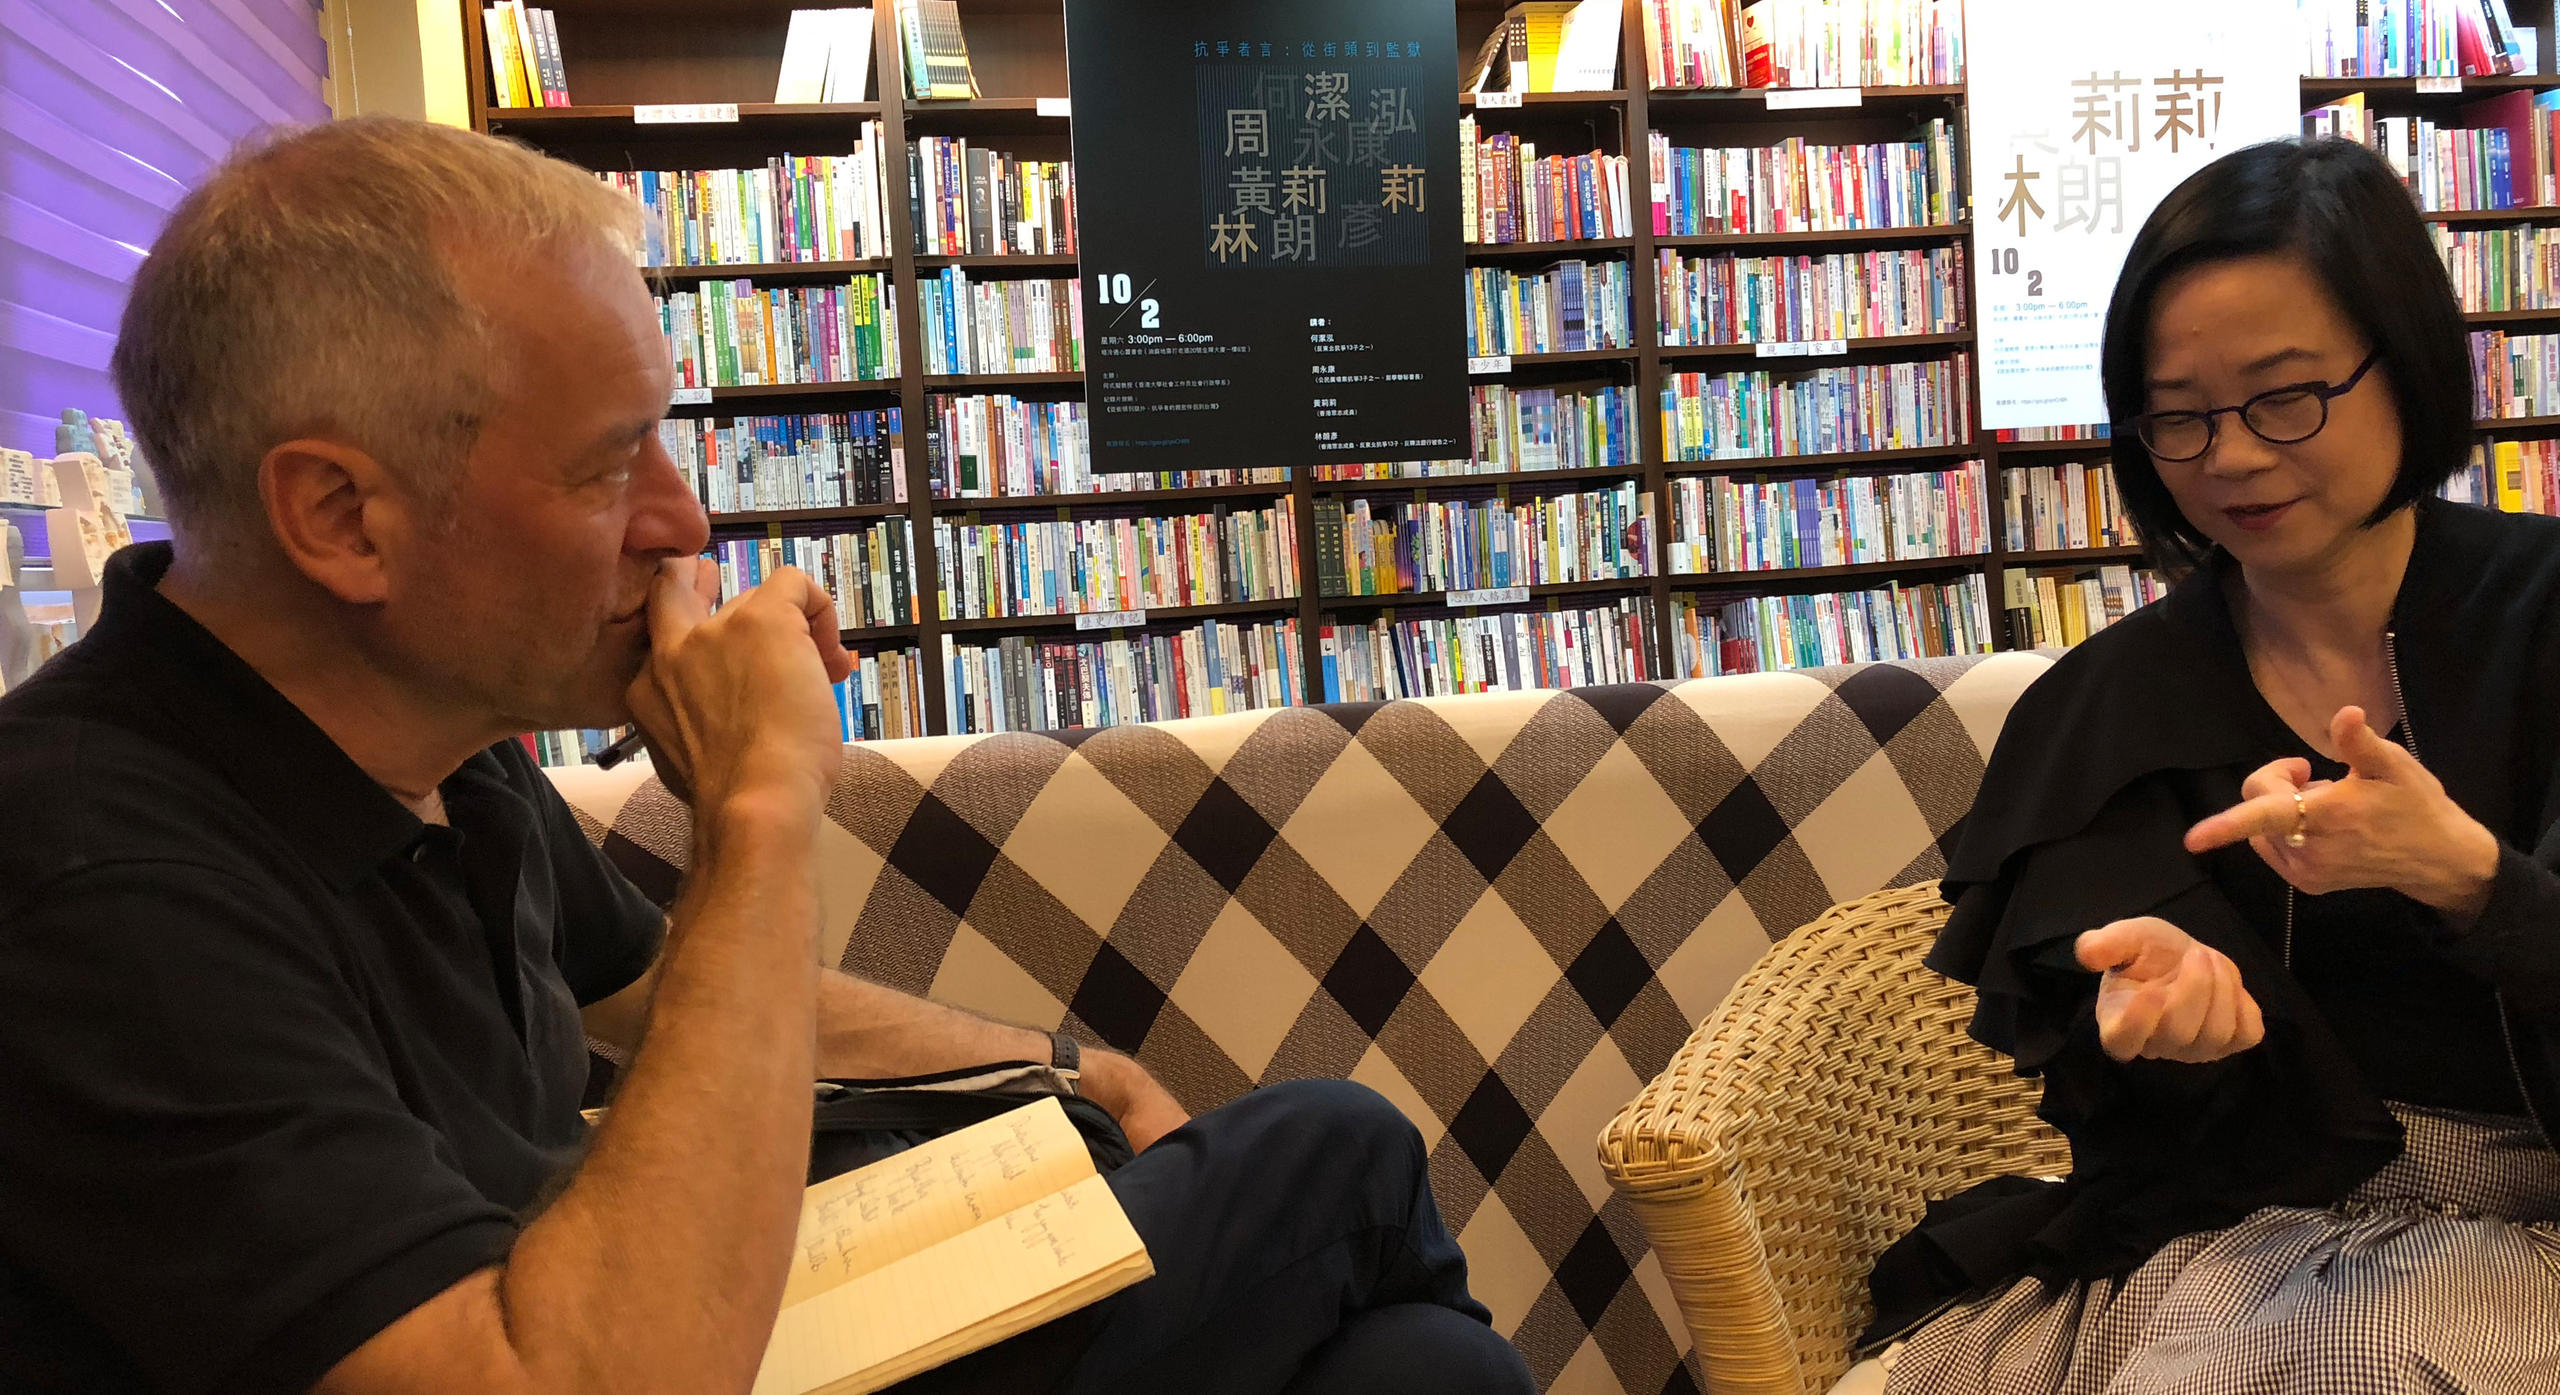 Bruno Kaufmann (left) talking to Ho Sik Ying, bookshelf in background